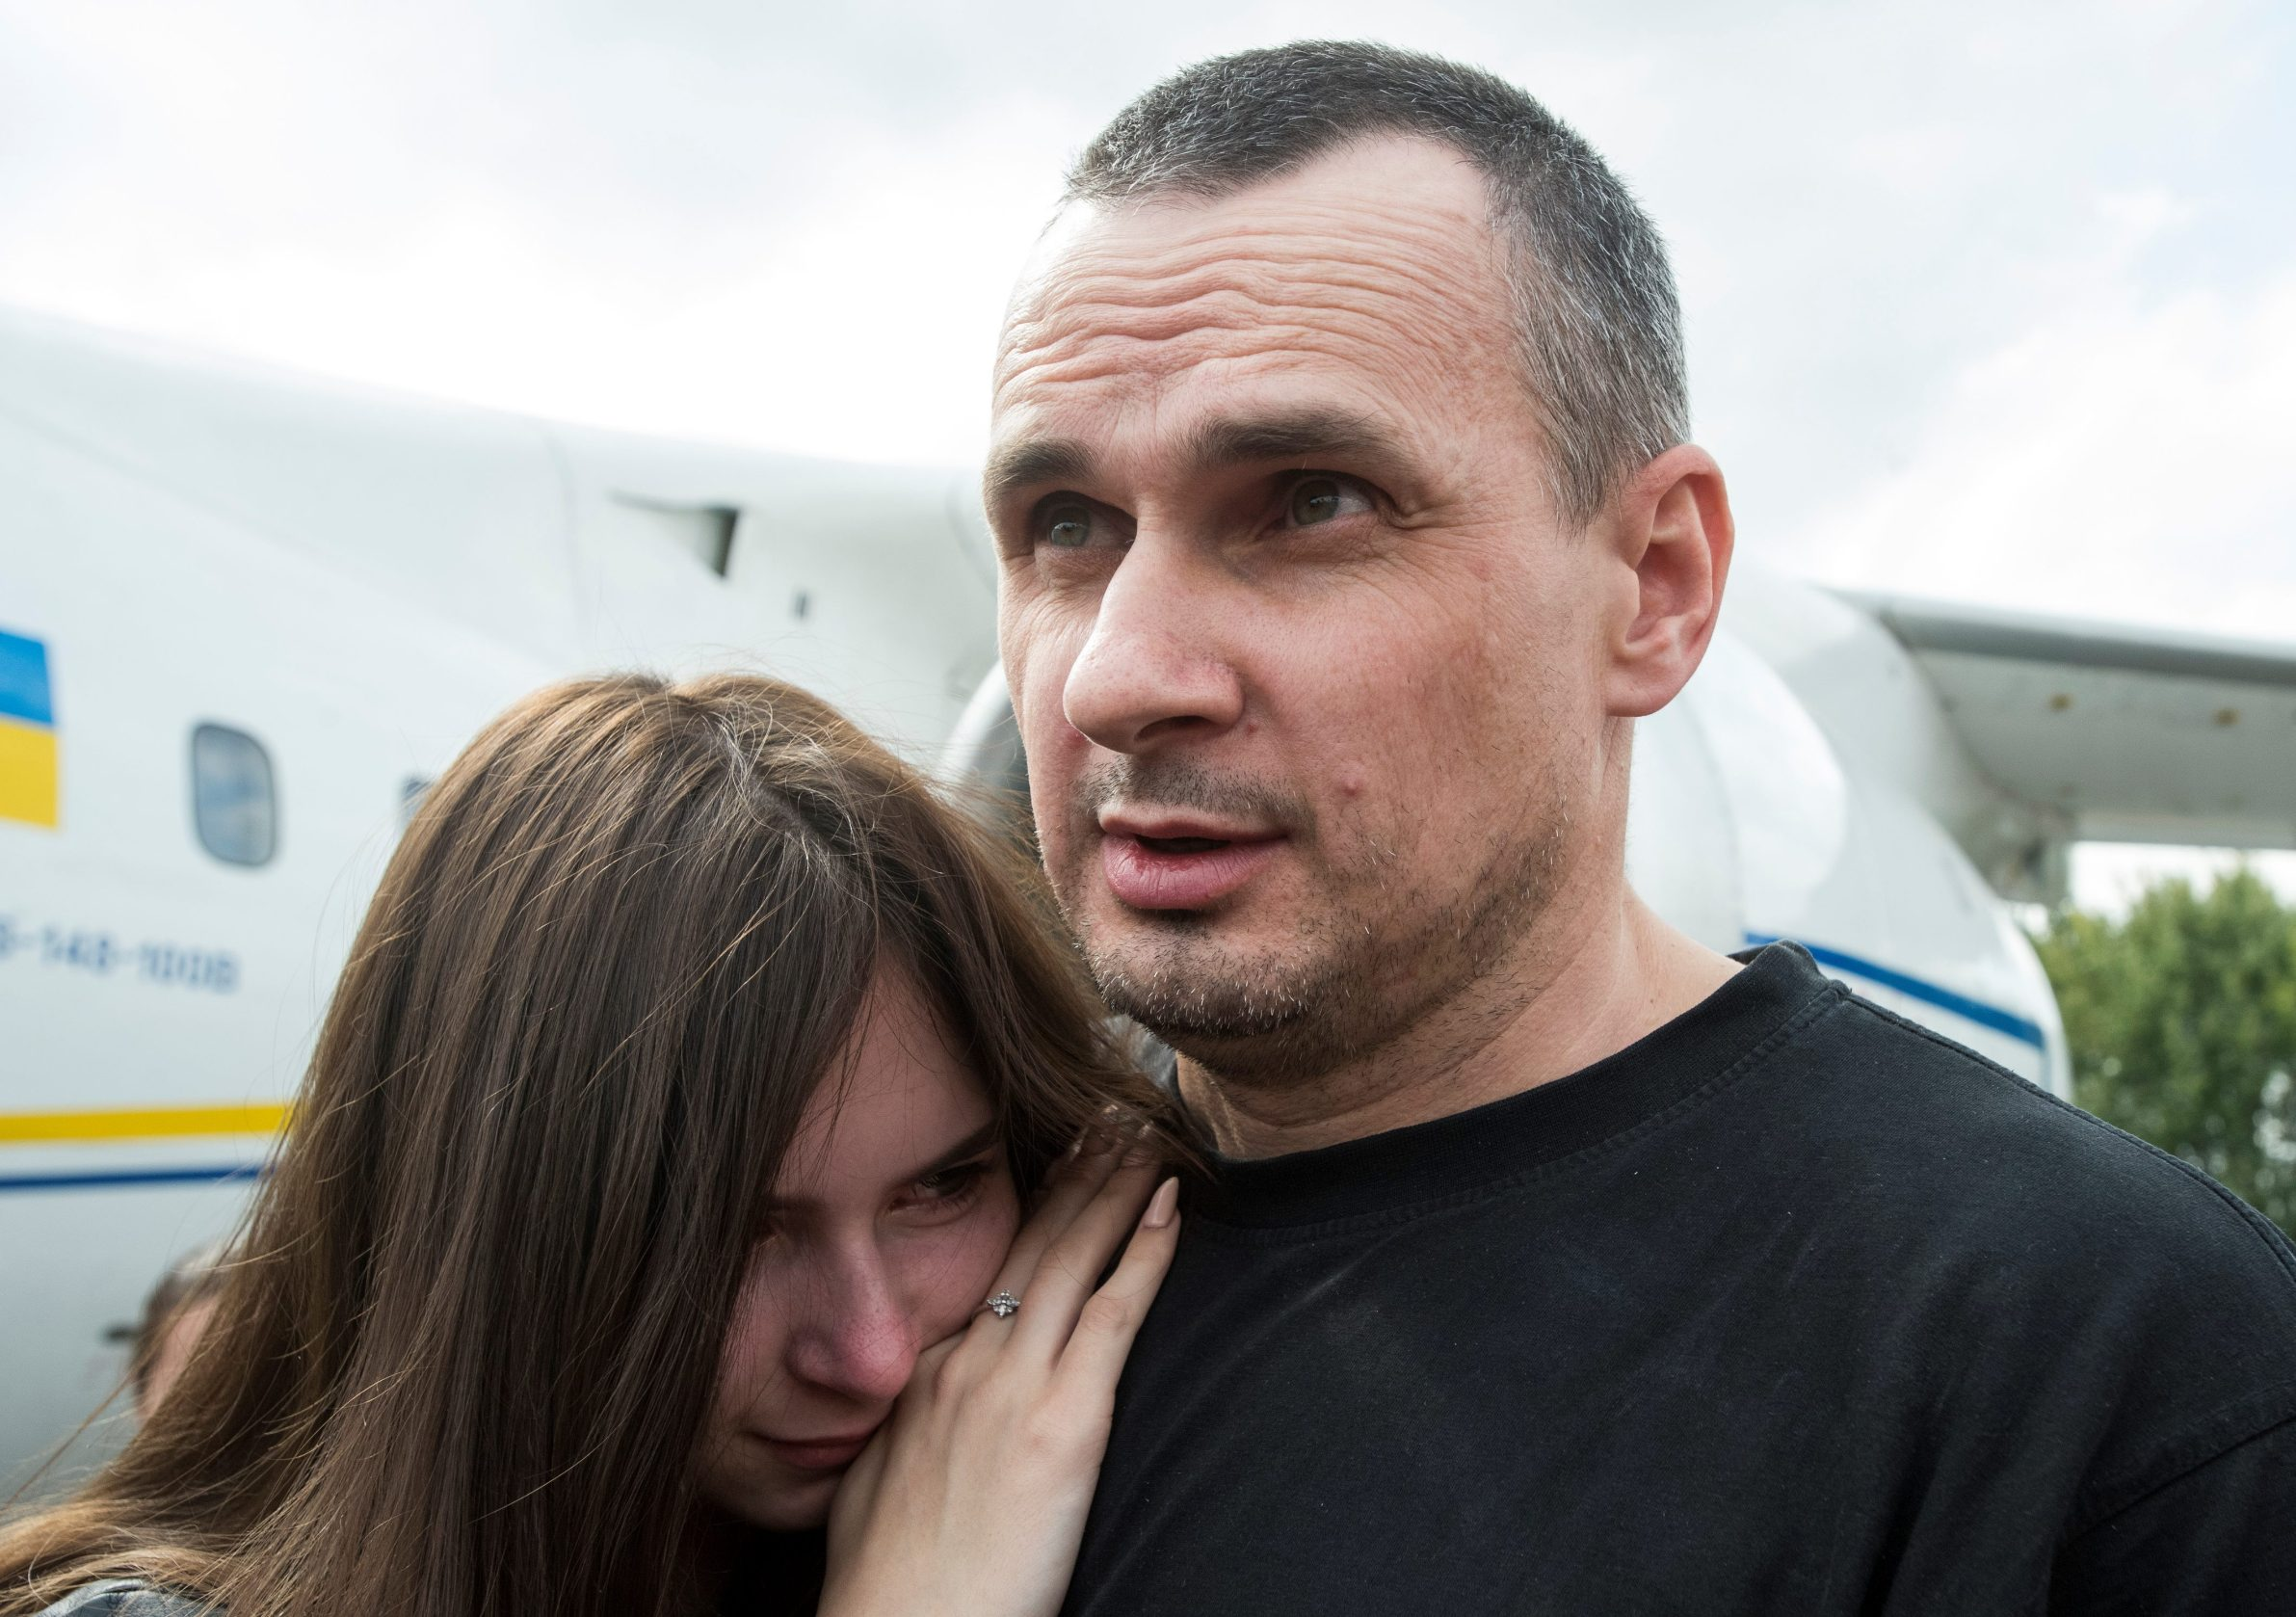 Ukrainian film director Oleg Sentsov hugs his daughter Alina Sentsova upon arrival in Kiev after Russia-Ukraine prisoner swap, at Borispil International Airport, outside Kiev, Ukraine September 7, 2019. REUTERS/Oleksandr Klymenko